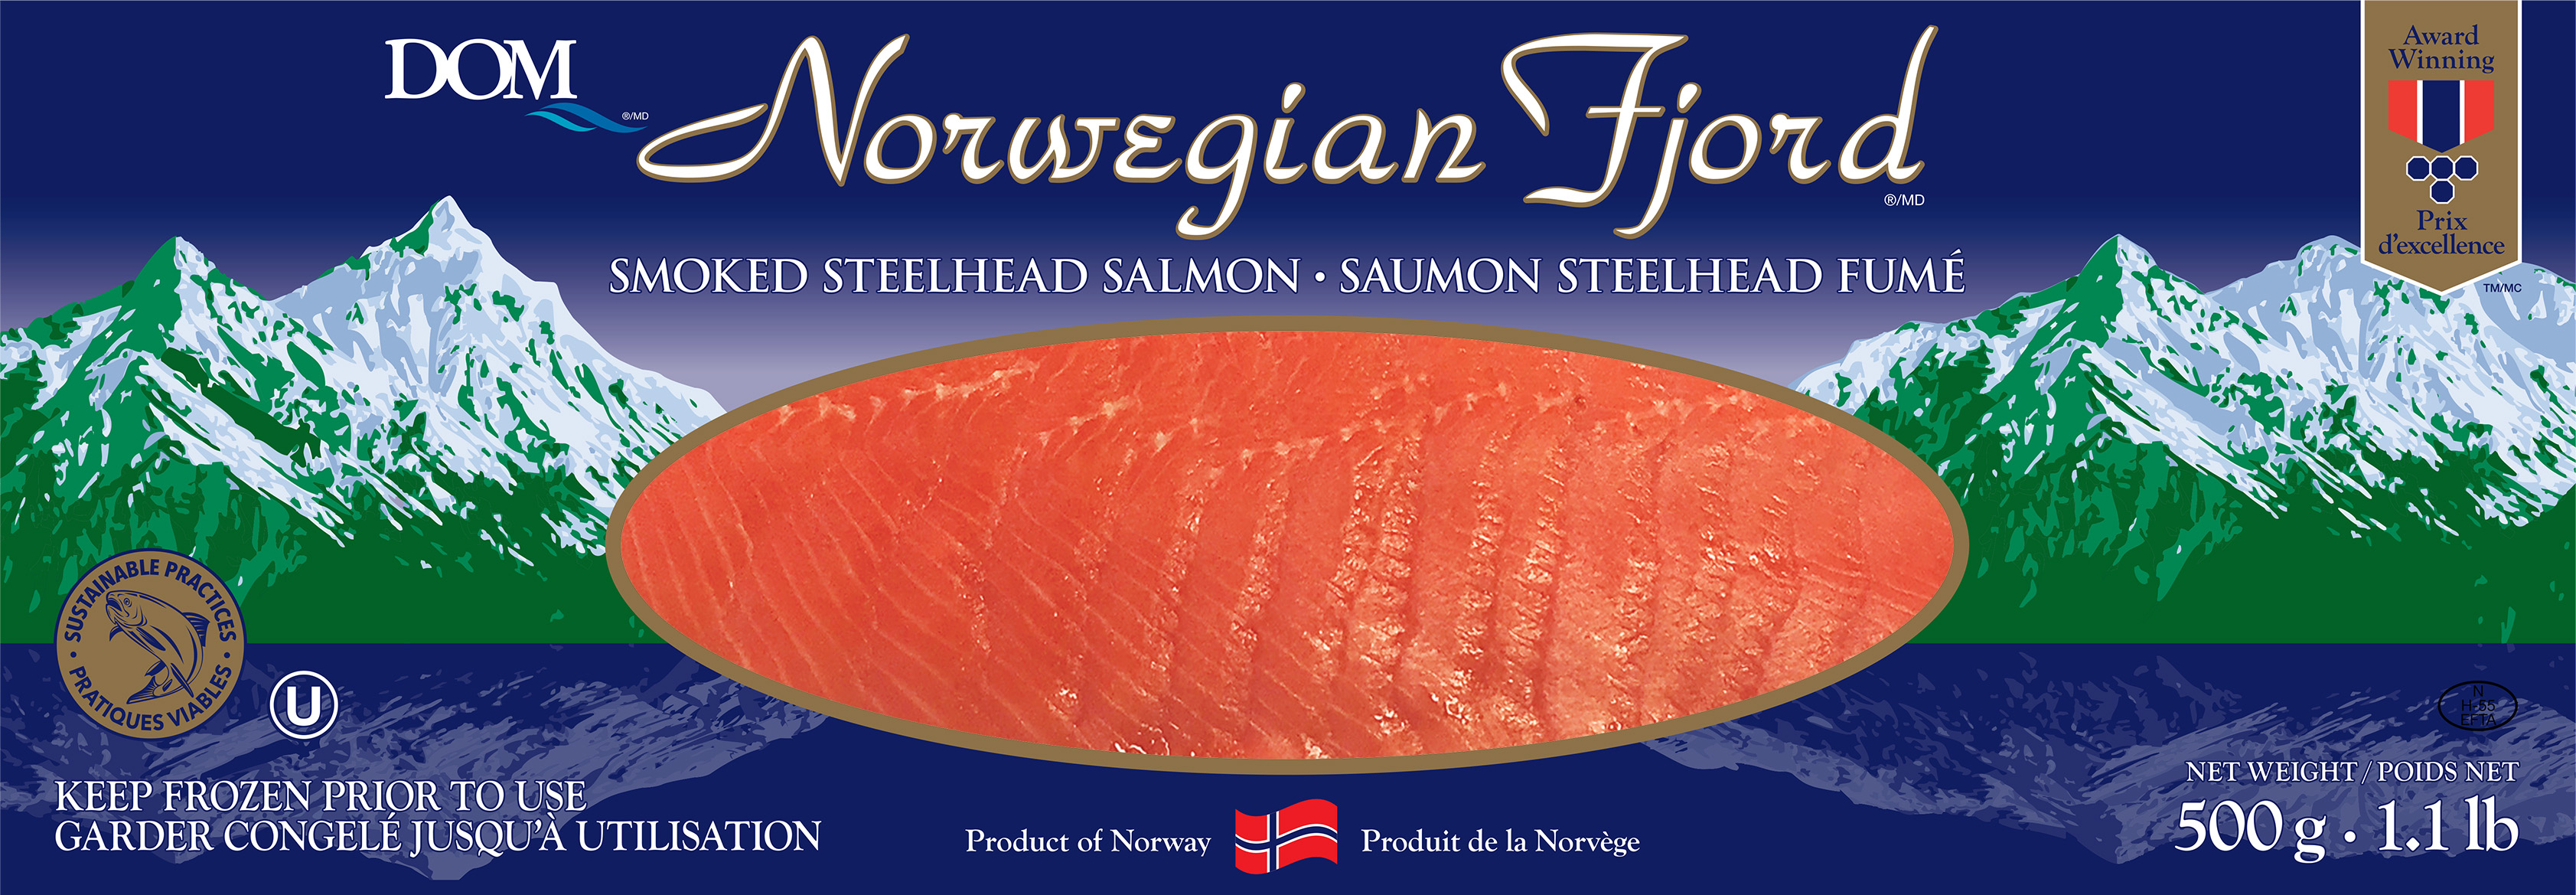 Norwegian Fjord Product | DOM International